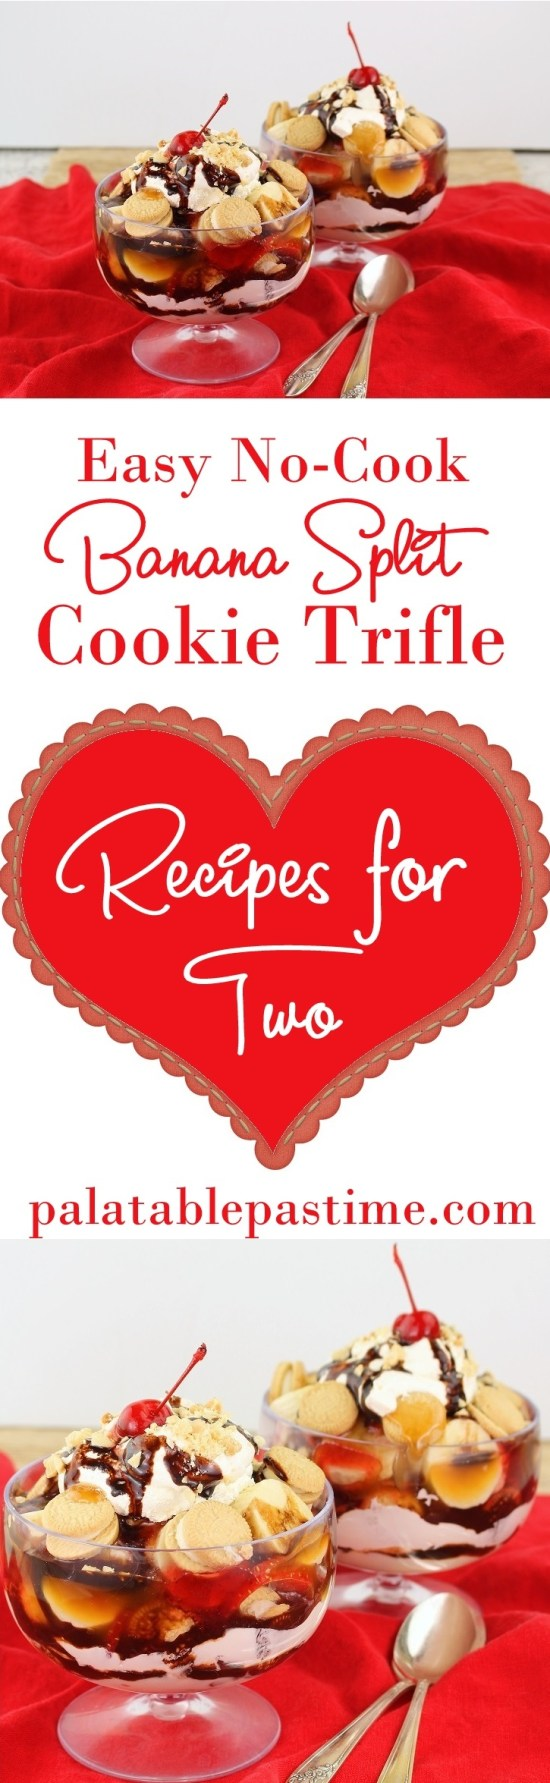 Banana Split Cookie Trifles